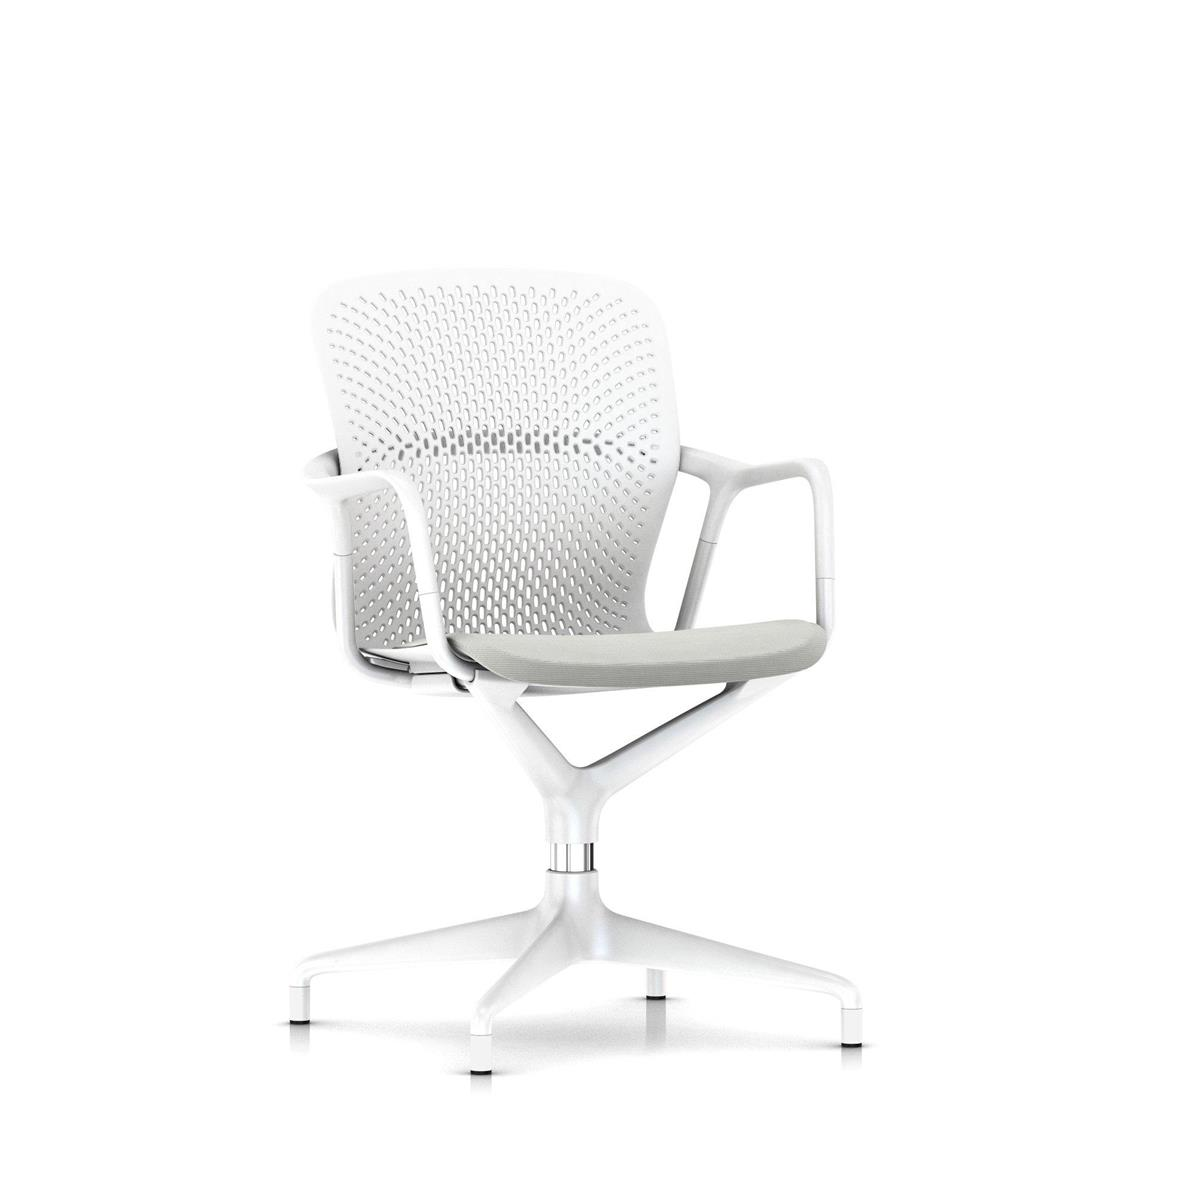 Keyn 4 Star Pedestal - White with Arms og polstret sete med Camira Sprint, glidere for alle underlag